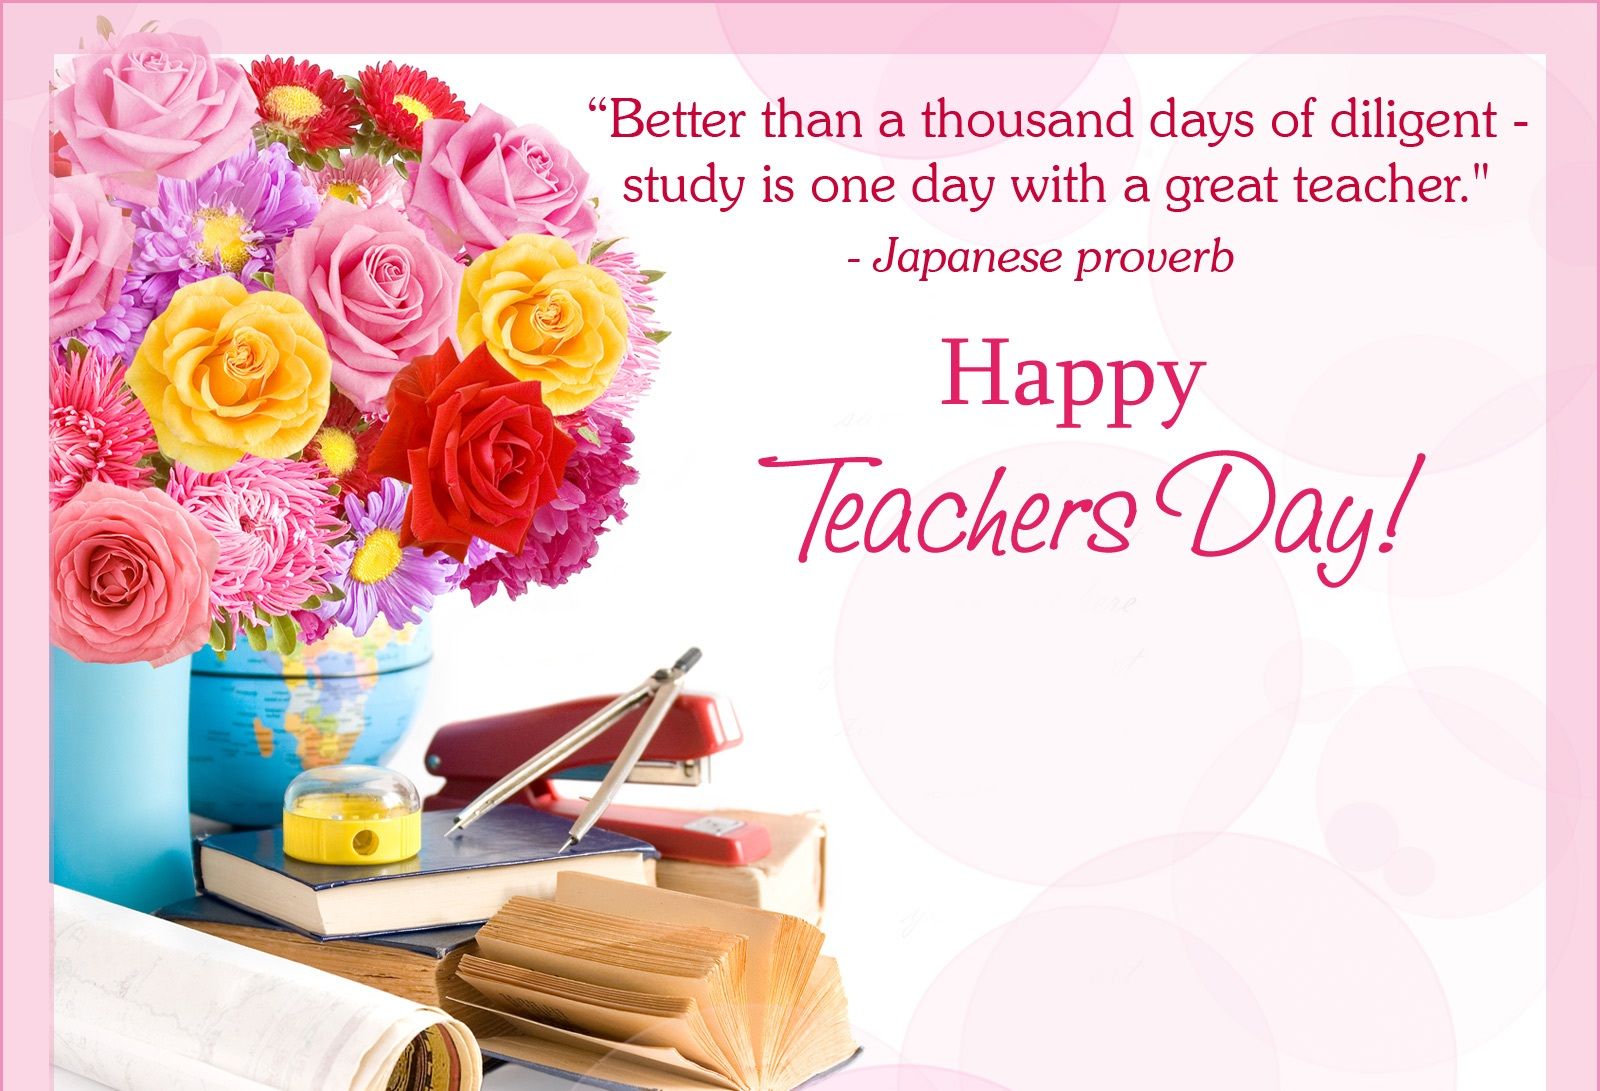 Happy Teachers Day Quotes Images And Wishes 2016 Sms Jokes Happy Teachers Day  Card Design